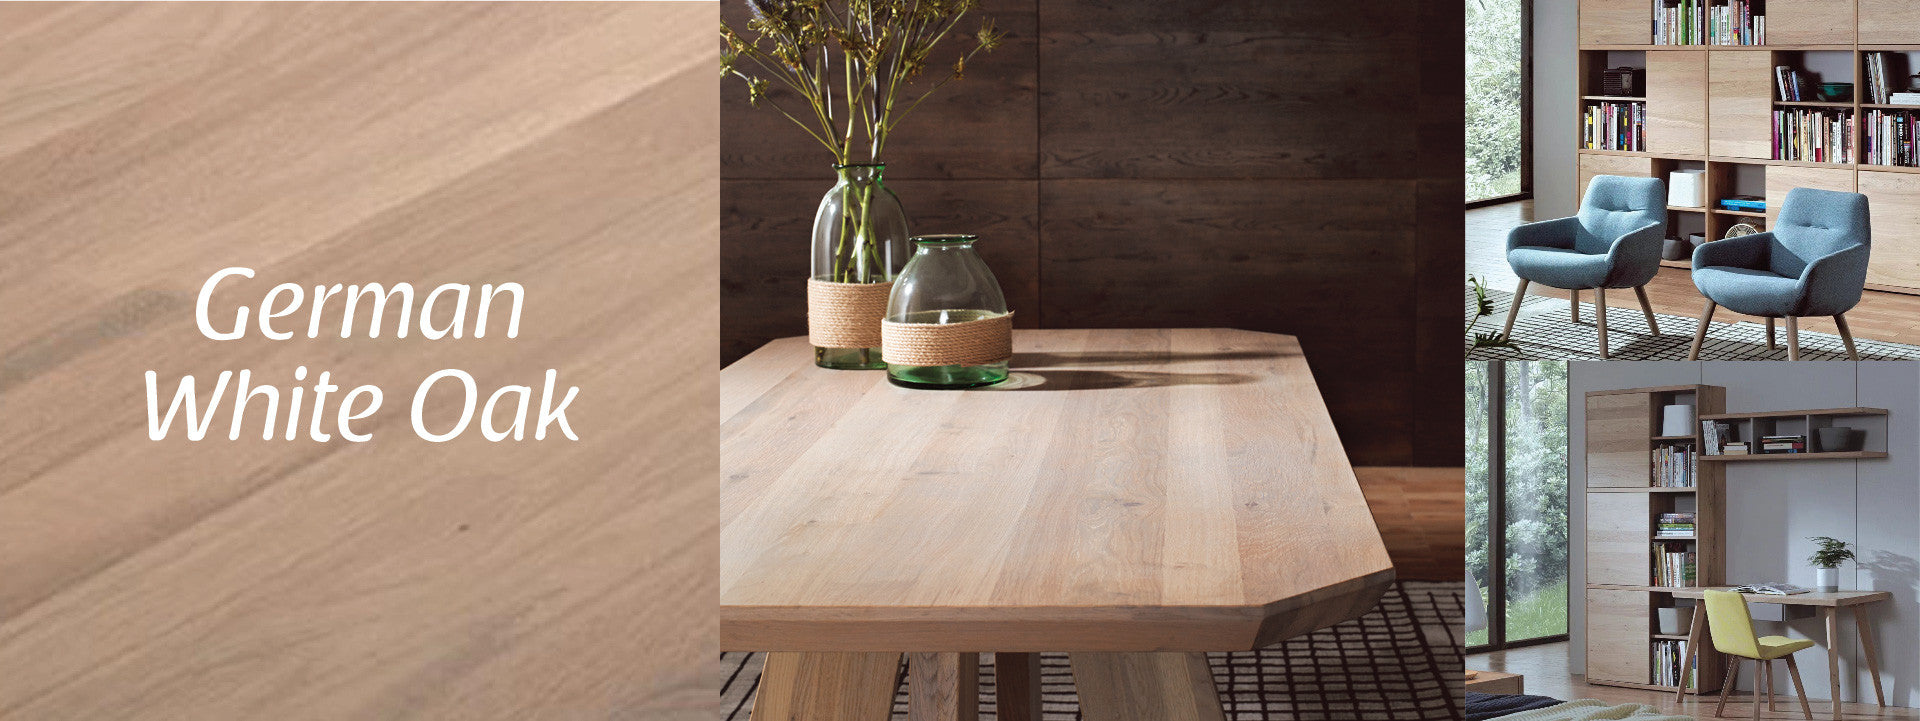 Norya Wood Types Norya Furniture Singapores No1 Premium